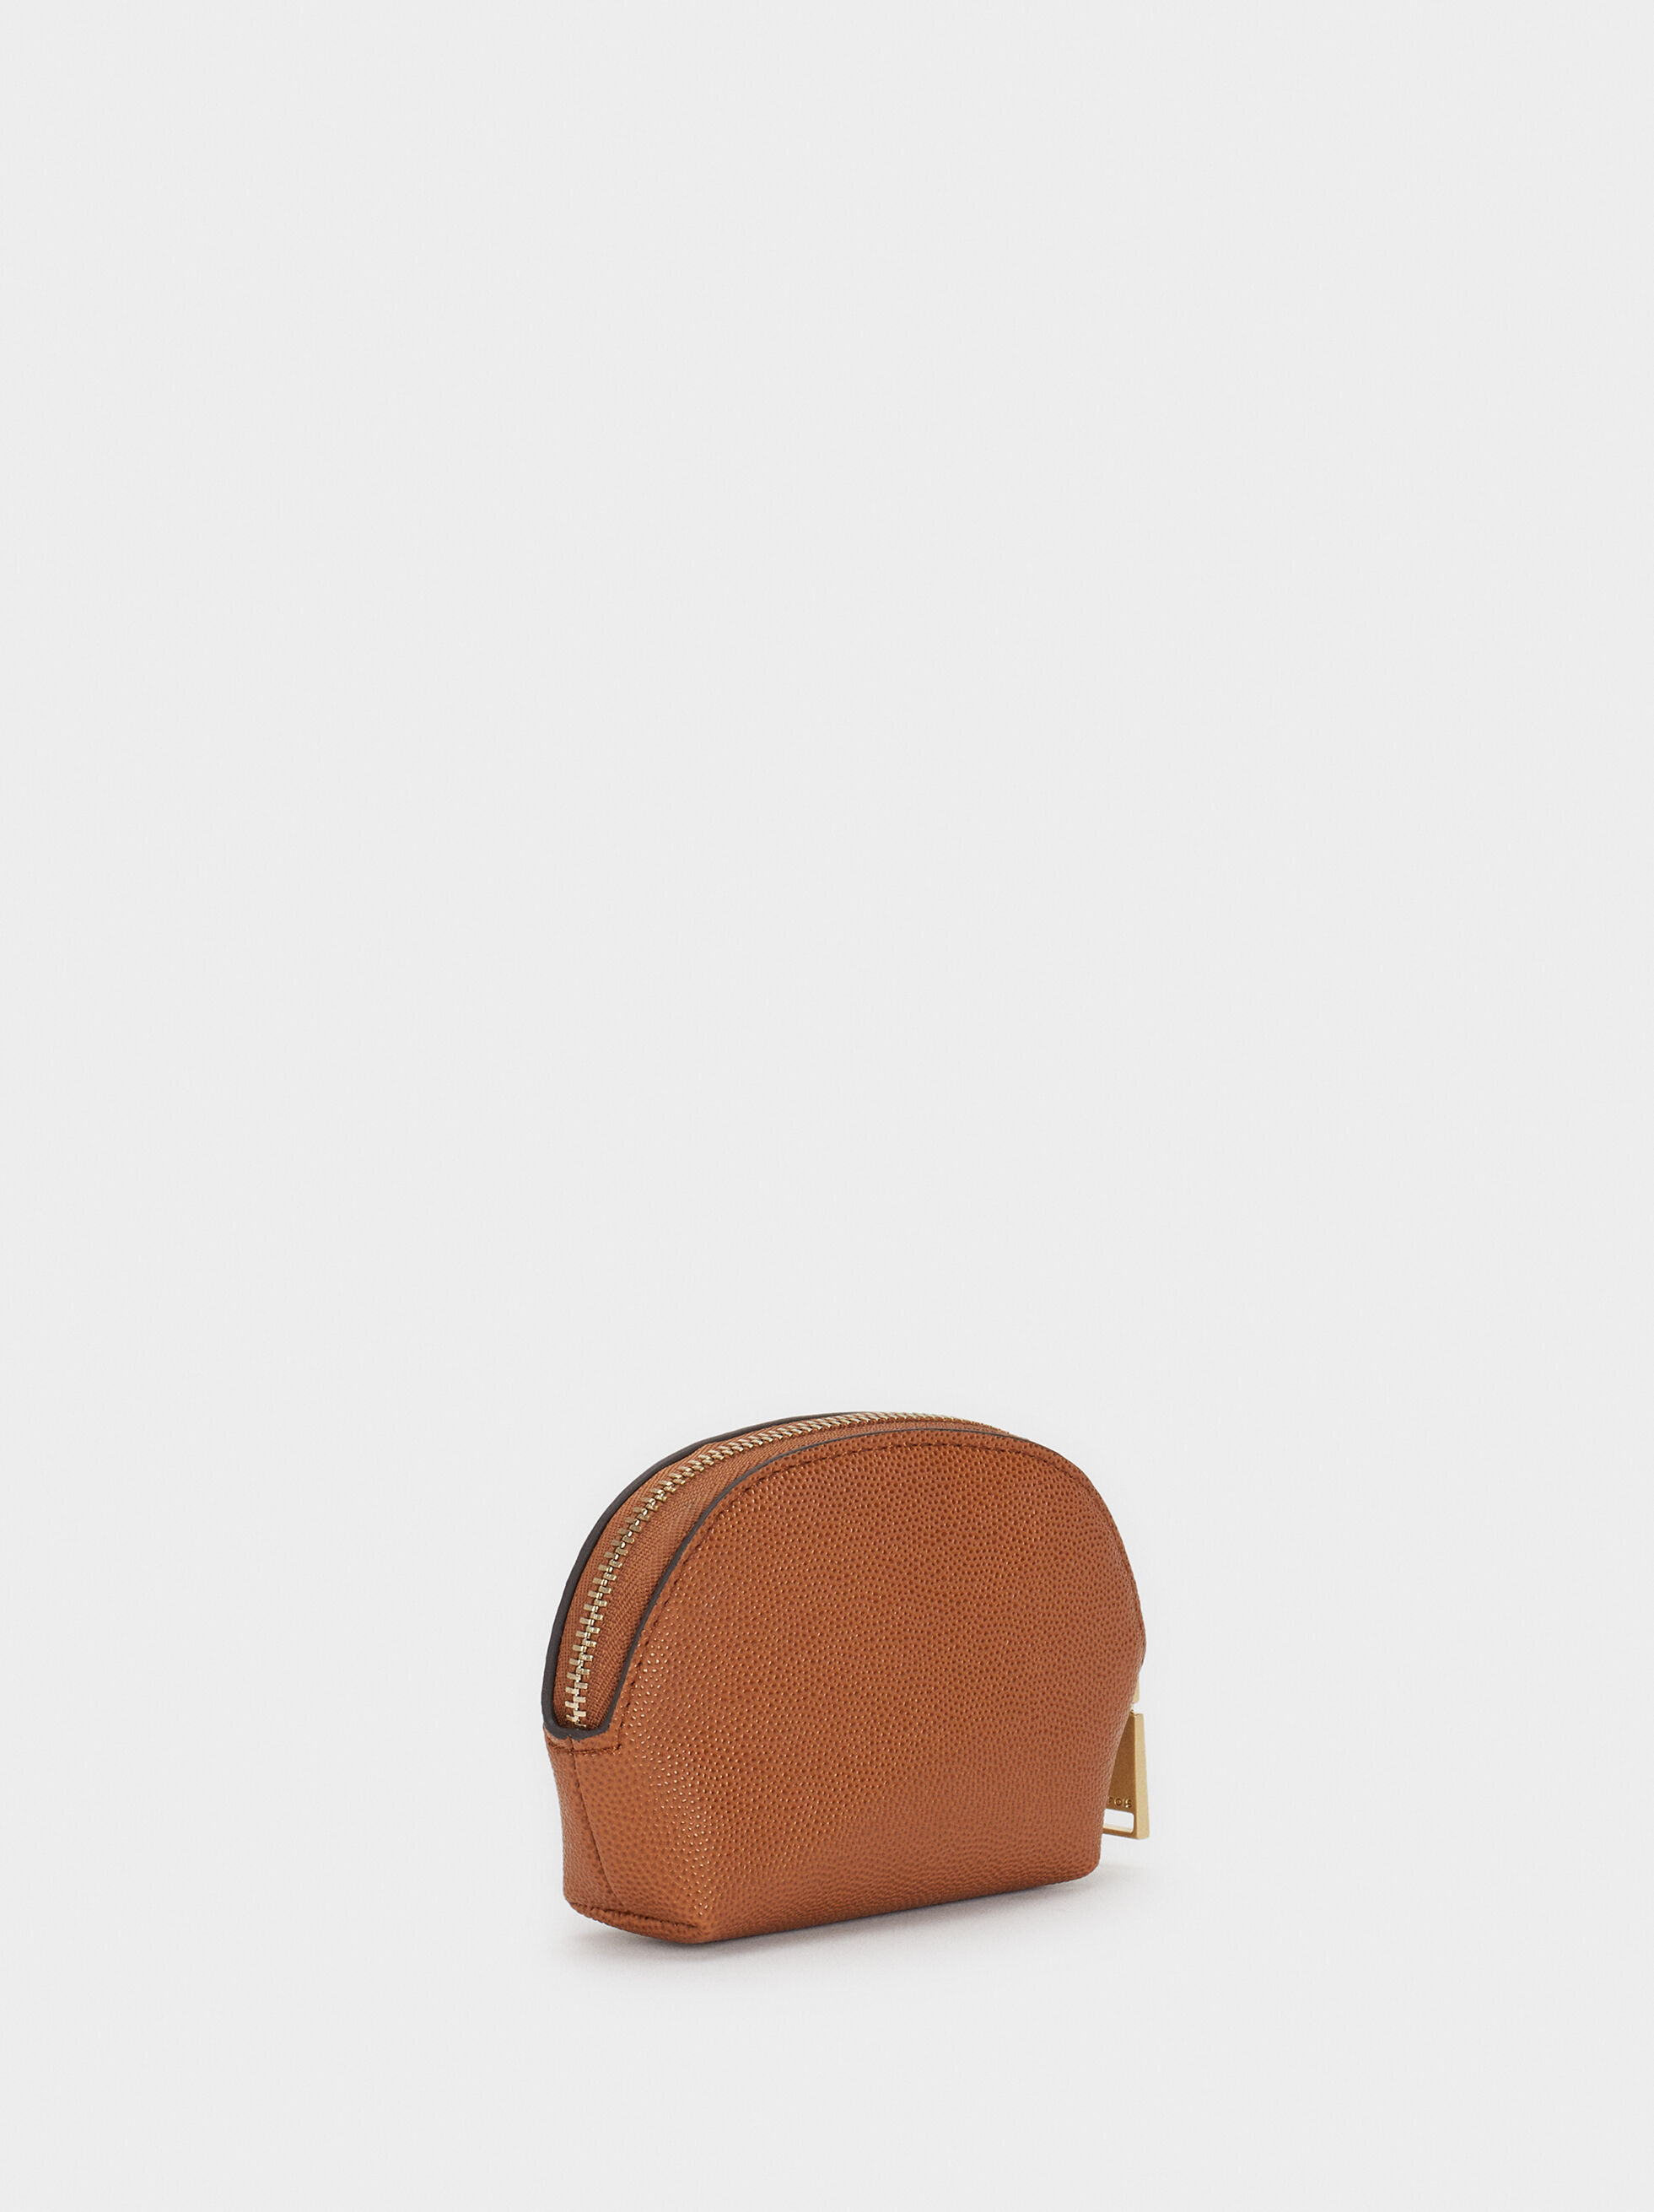 Small Embossed Purse, Camel, hi-res